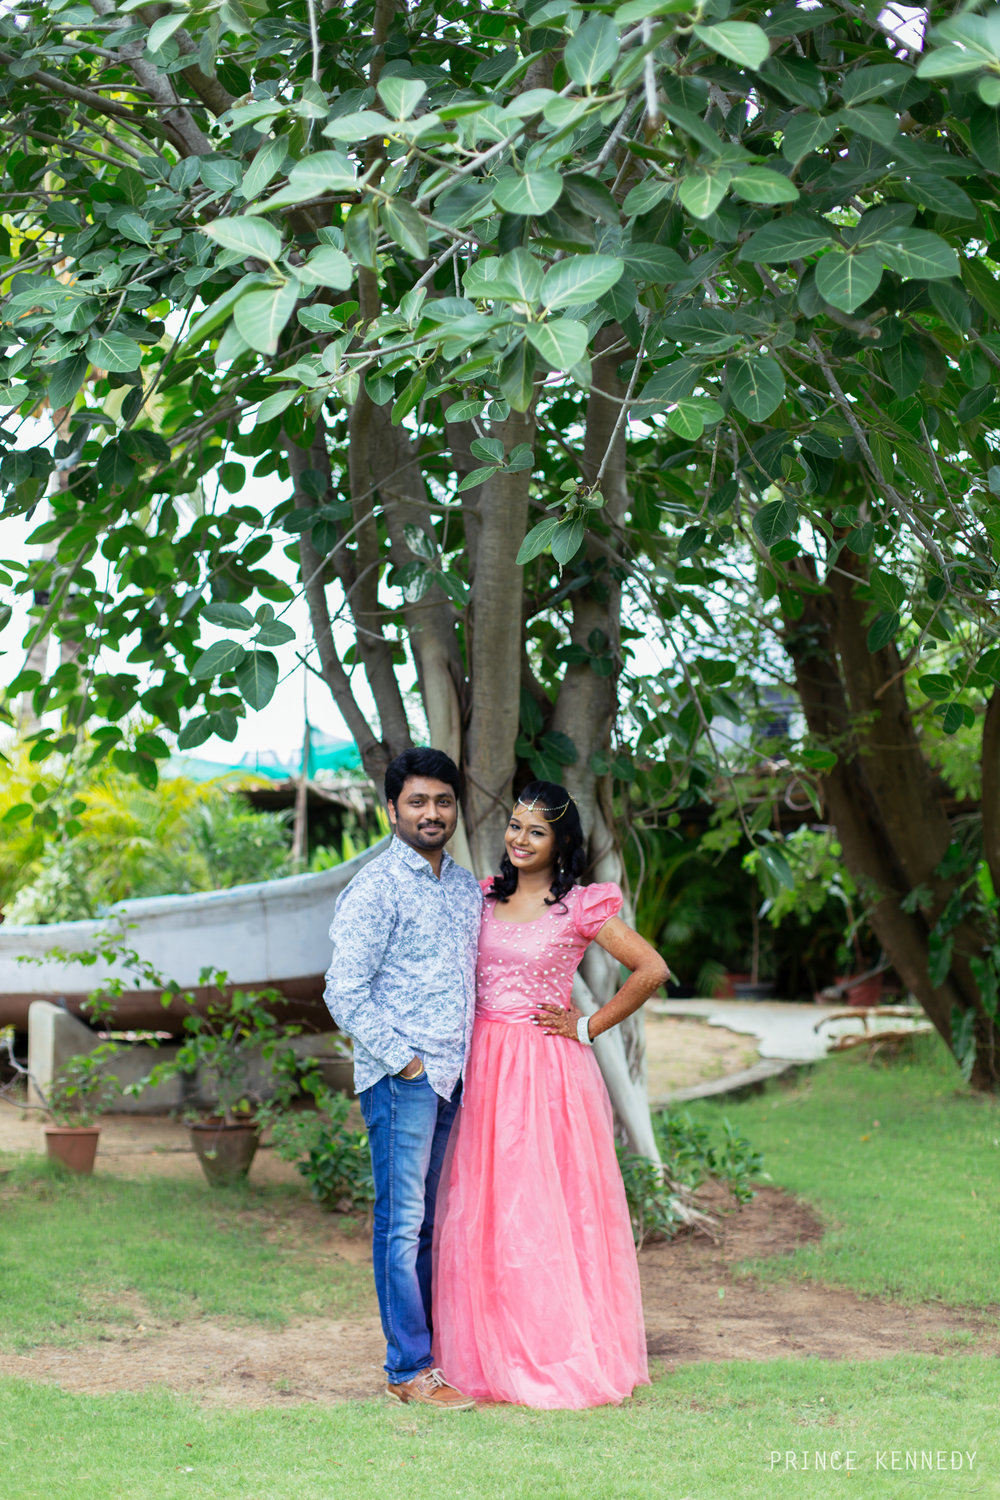 Engagement-Couple-Portrait-Portraiture-Wedding-Couple-Portrait-Chennai-Photographer-Candid-Photography-Destination-Best-Prince-Kennedy-Photography-47.jpg